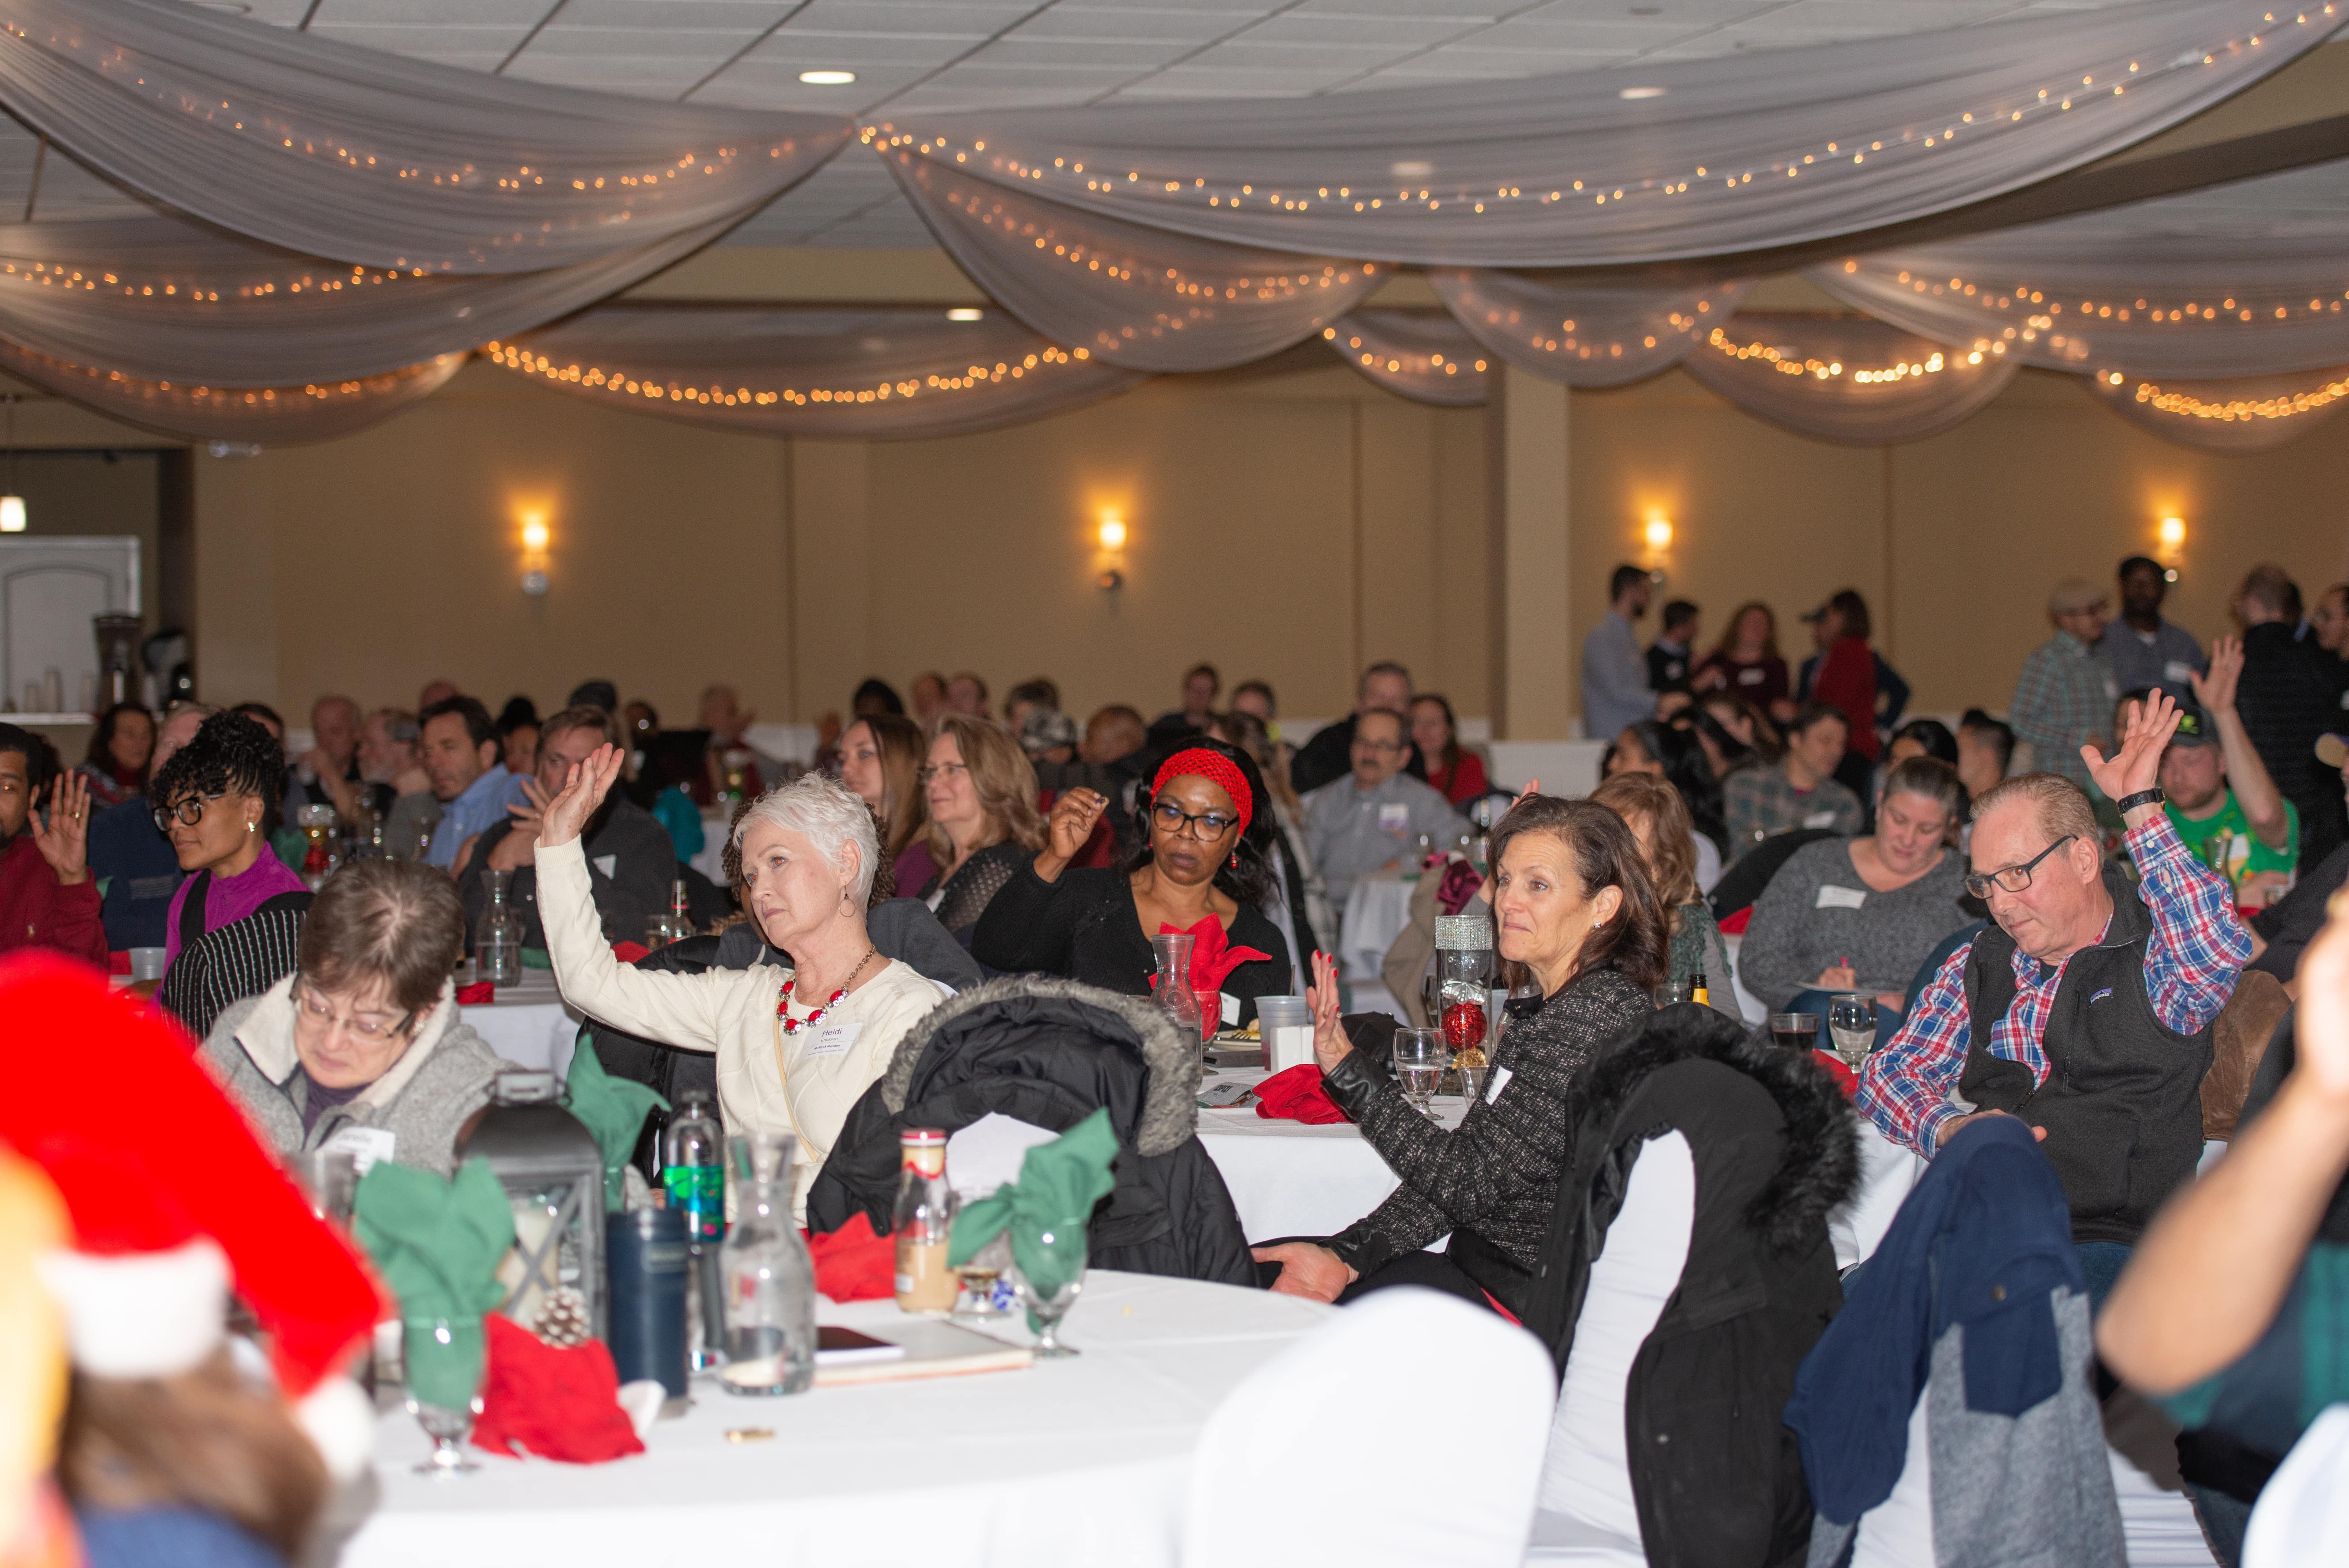 2019-12-December/EventPhotos/7th-Annual-Toys-for-Tots-Holiday-Party/-4 (Image - 4)